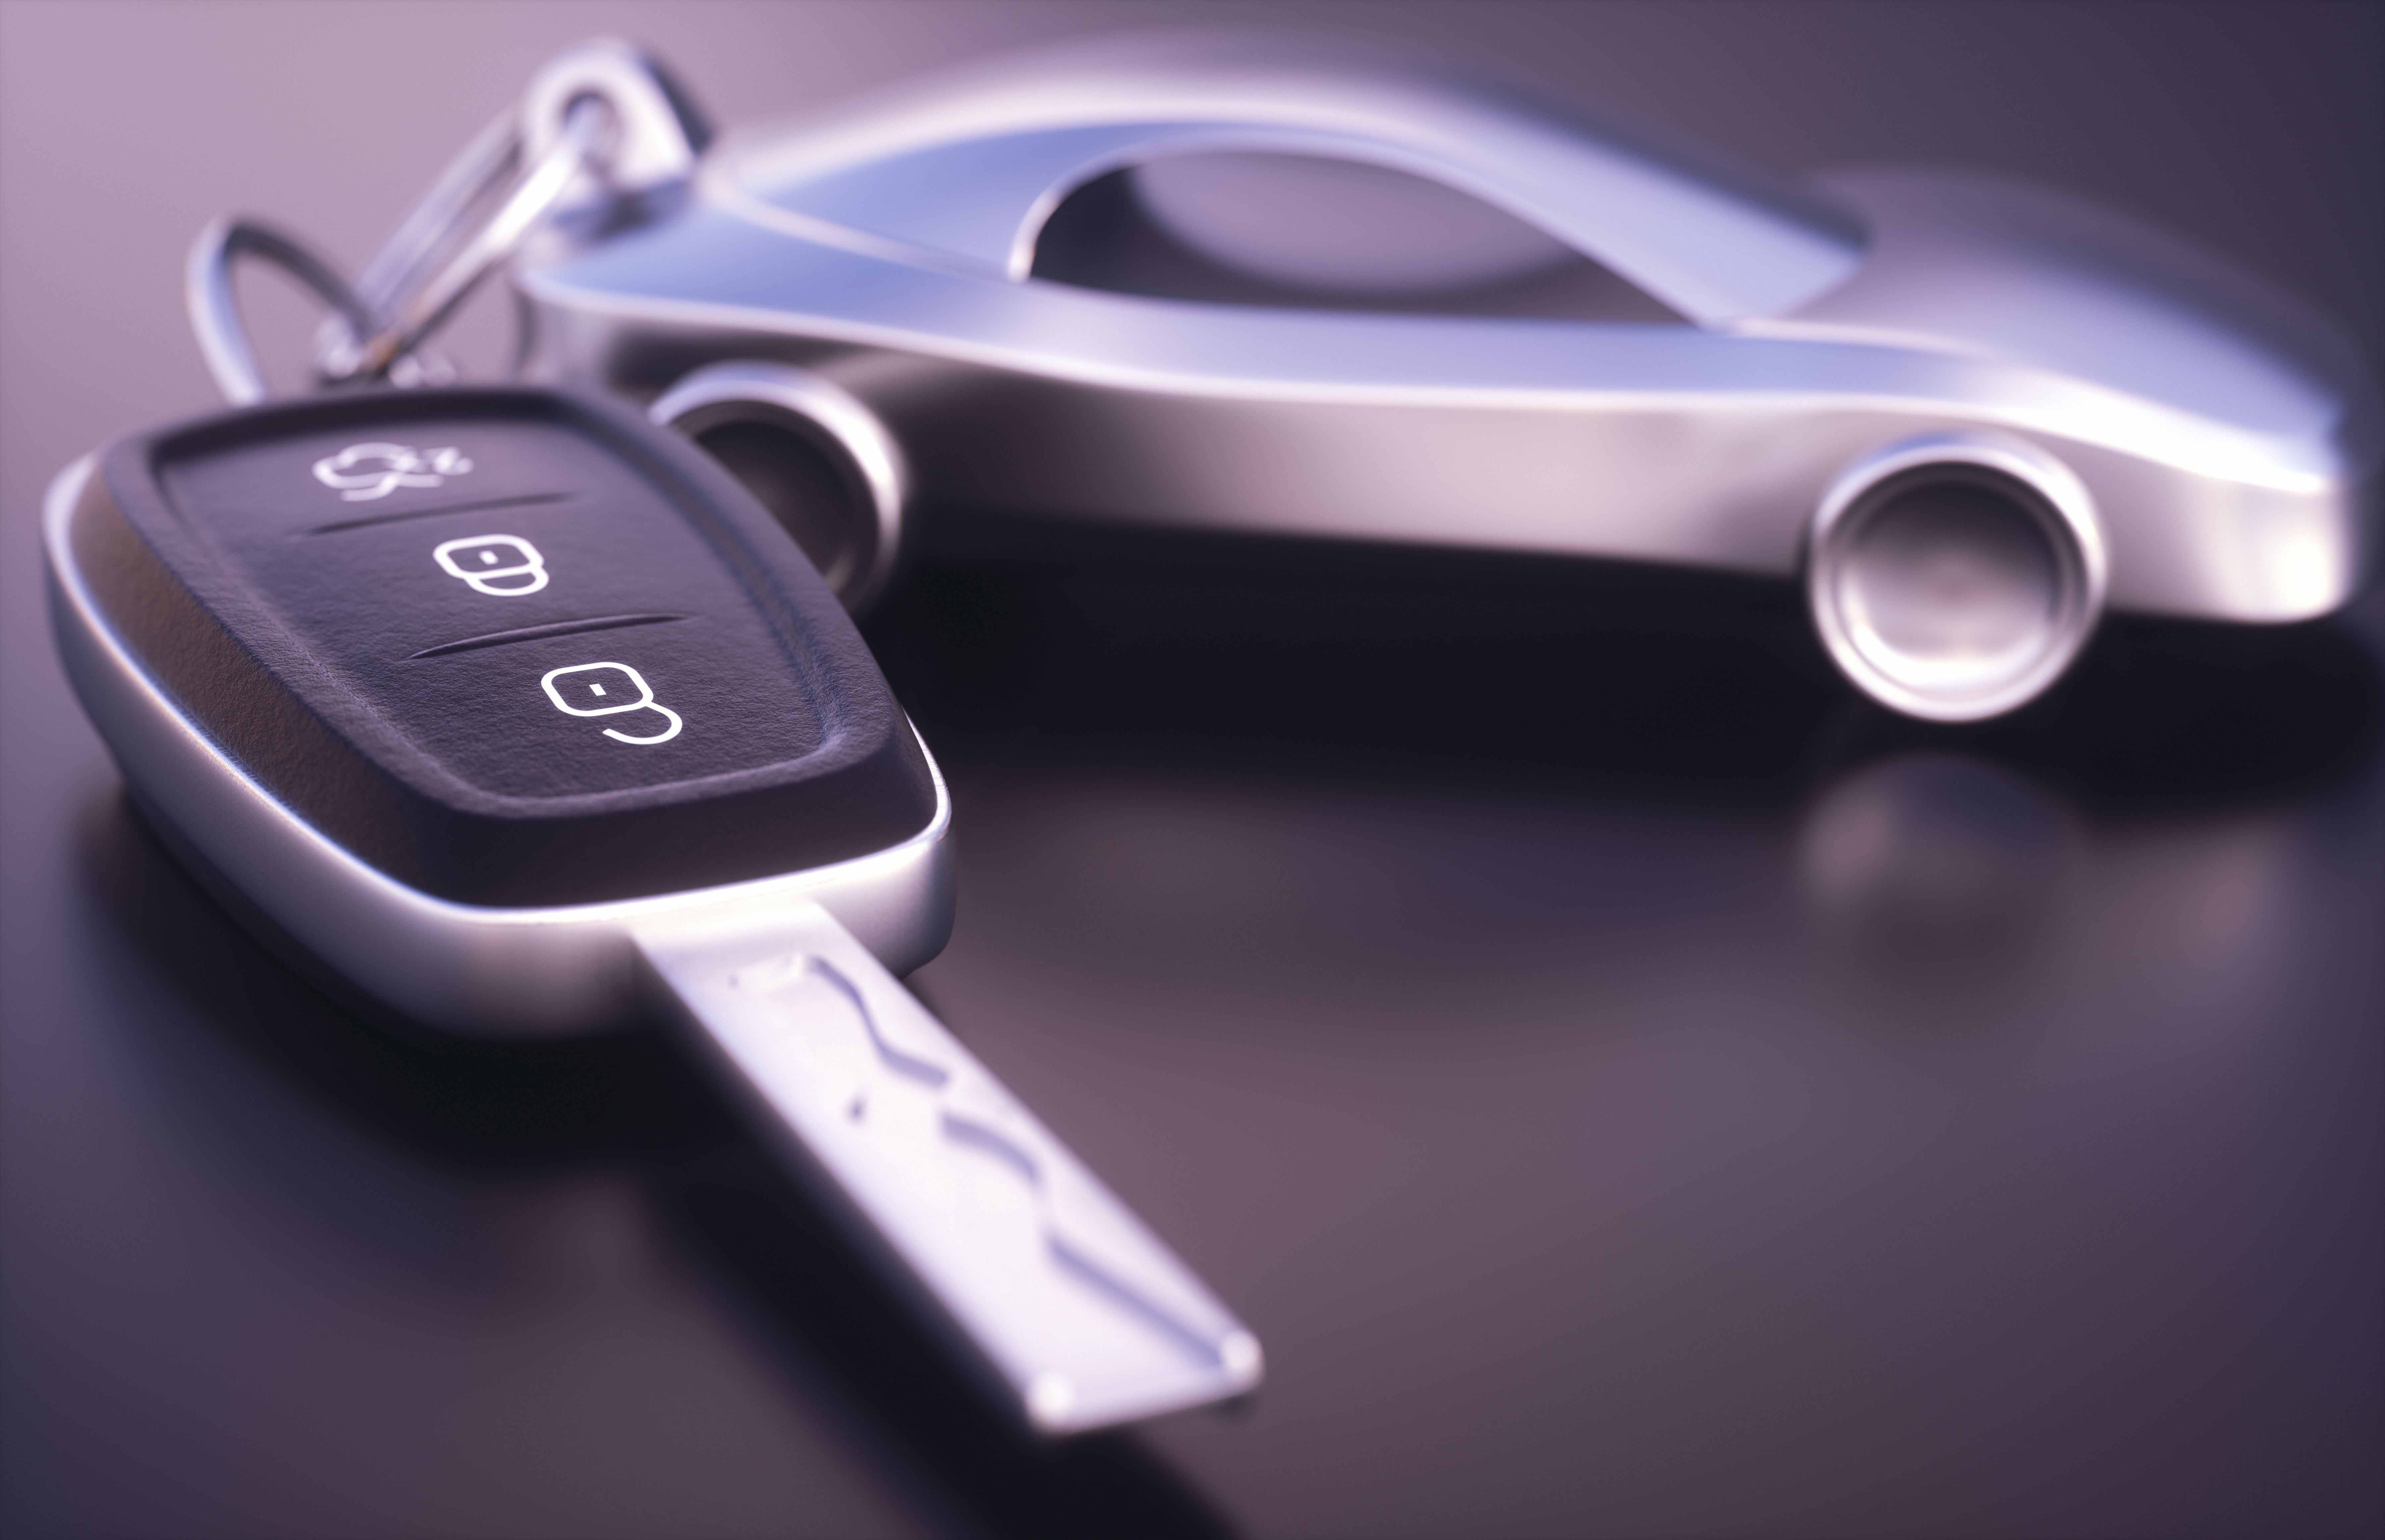 An Auto Insurance Score Is A Three Digit Number That Gives Insurers An Idea Of How Likely You Are To File A Claim A Go Car Key Holder Car Insurance Key Holder